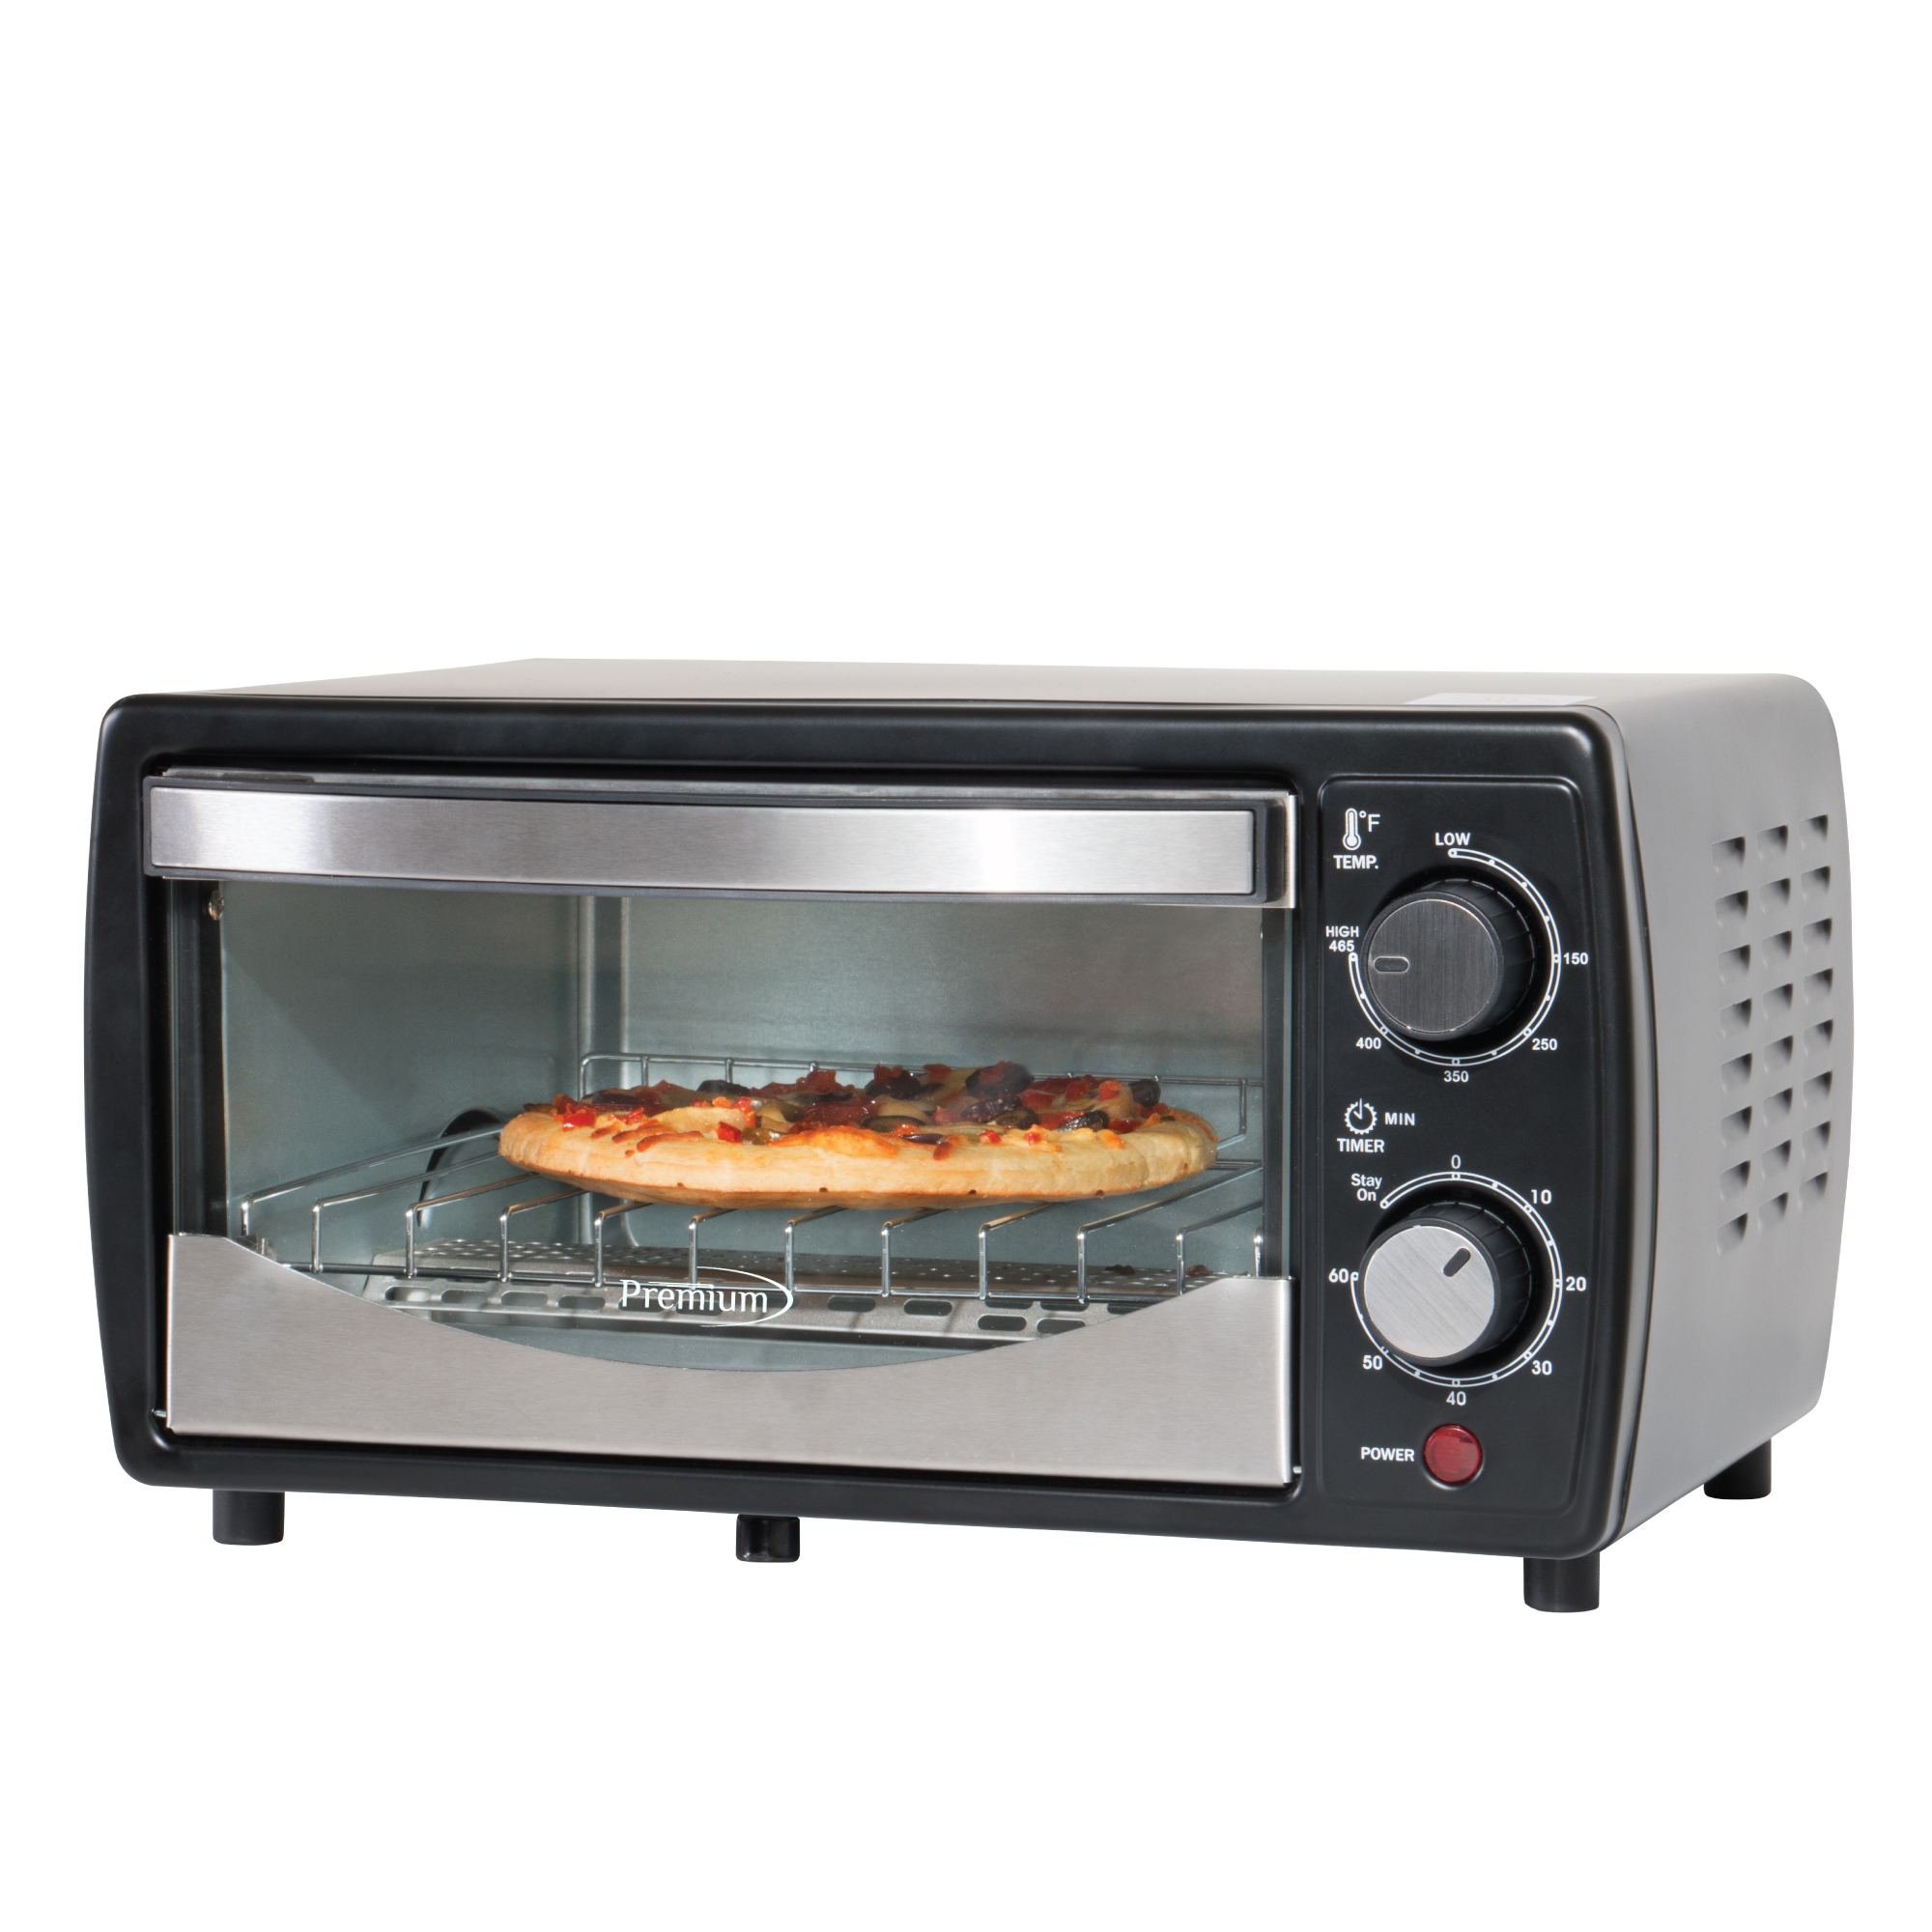 Premium Appliances 4 Slice Toaster Oven